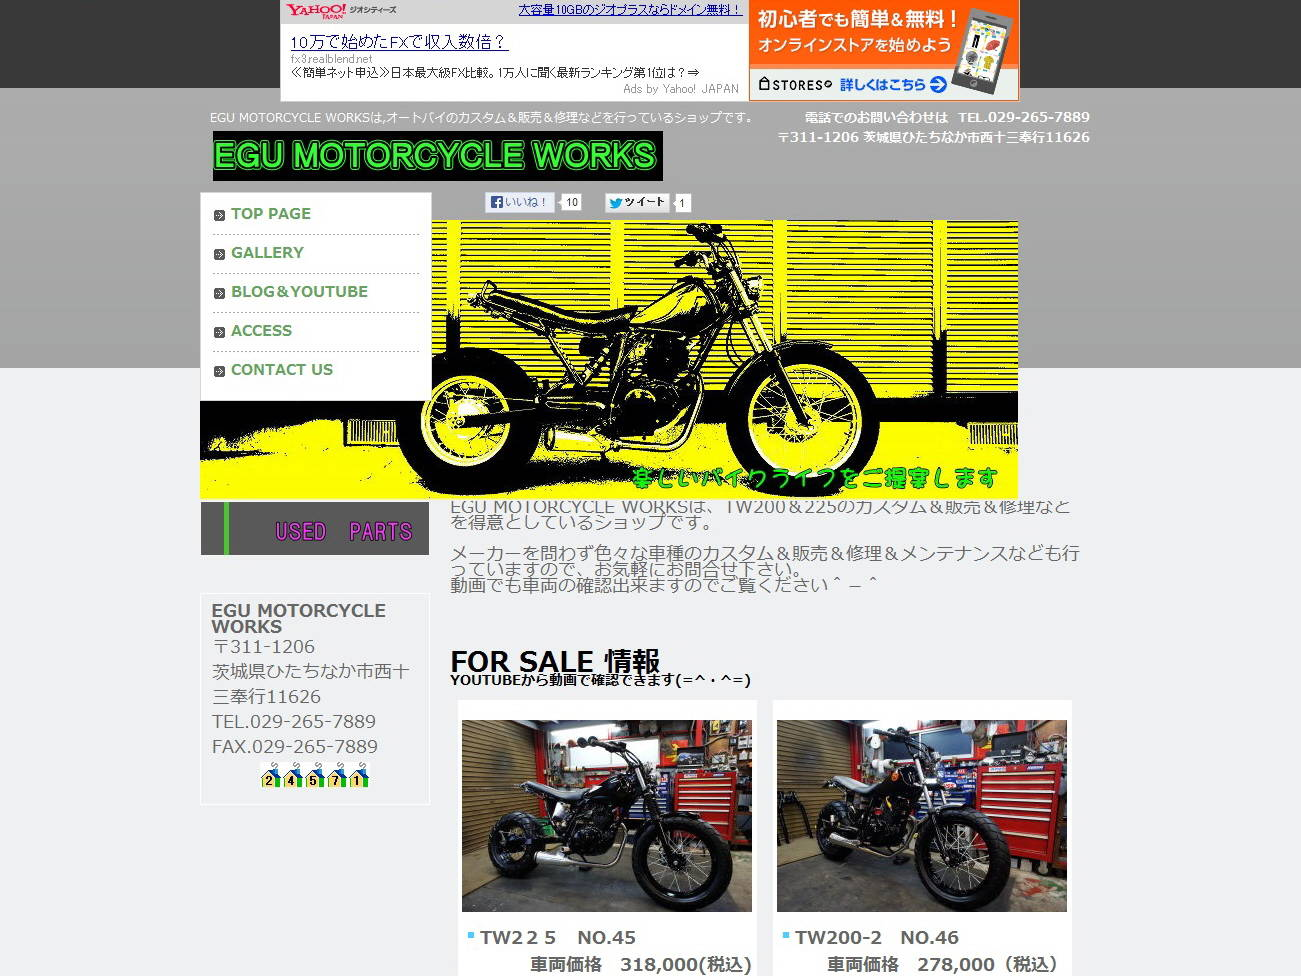 EGU MOTORCYCLE WORKS